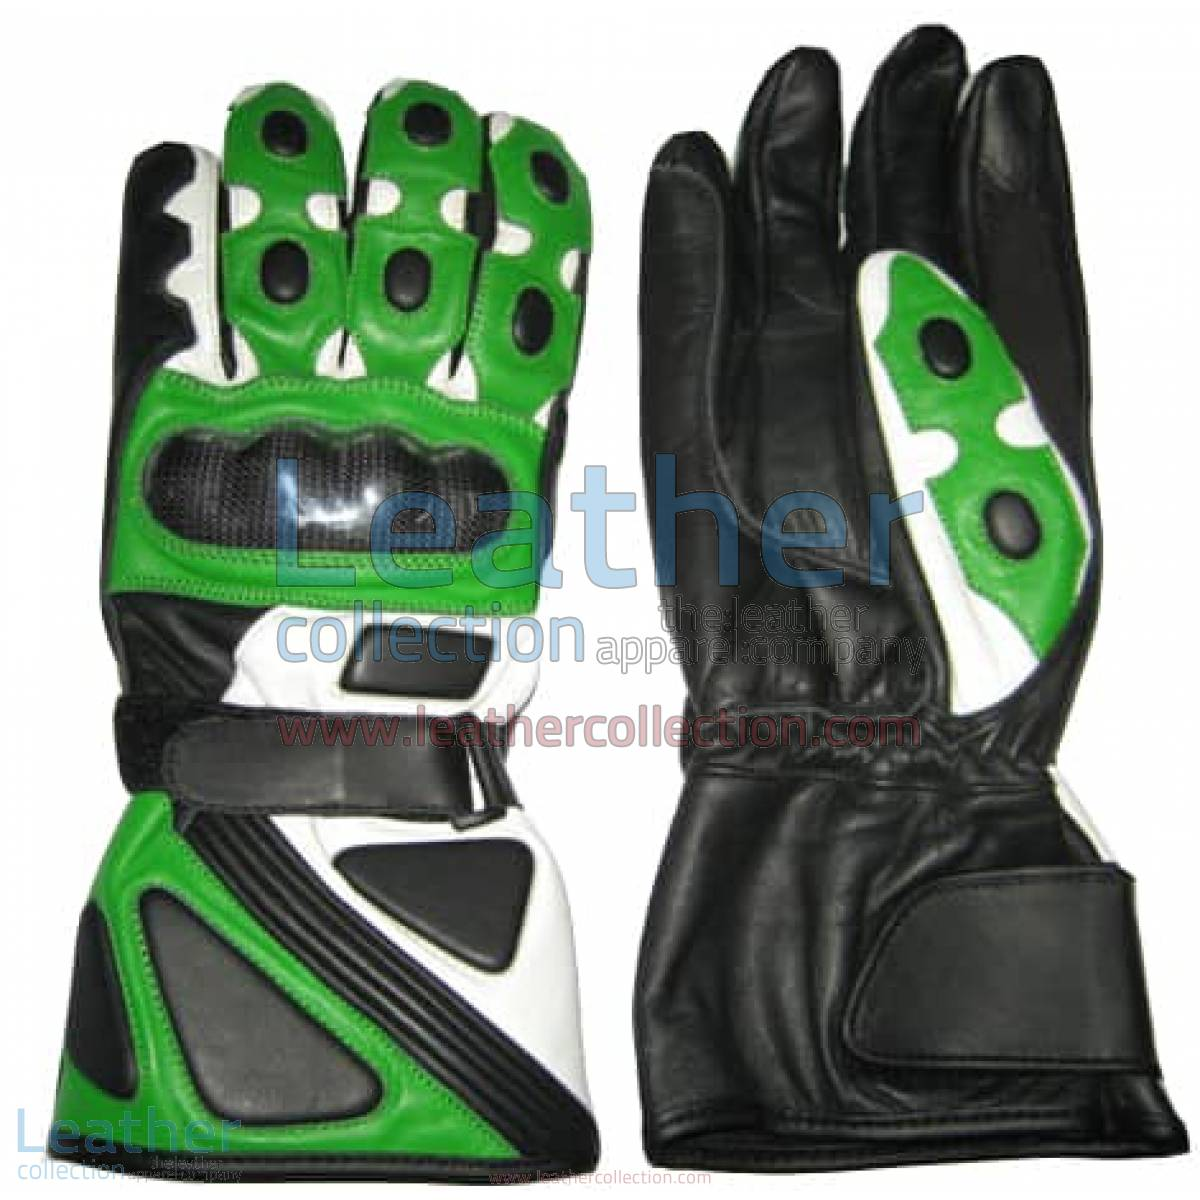 Bravo Green Motorcycle Race Gloves | motorcycle race gloves